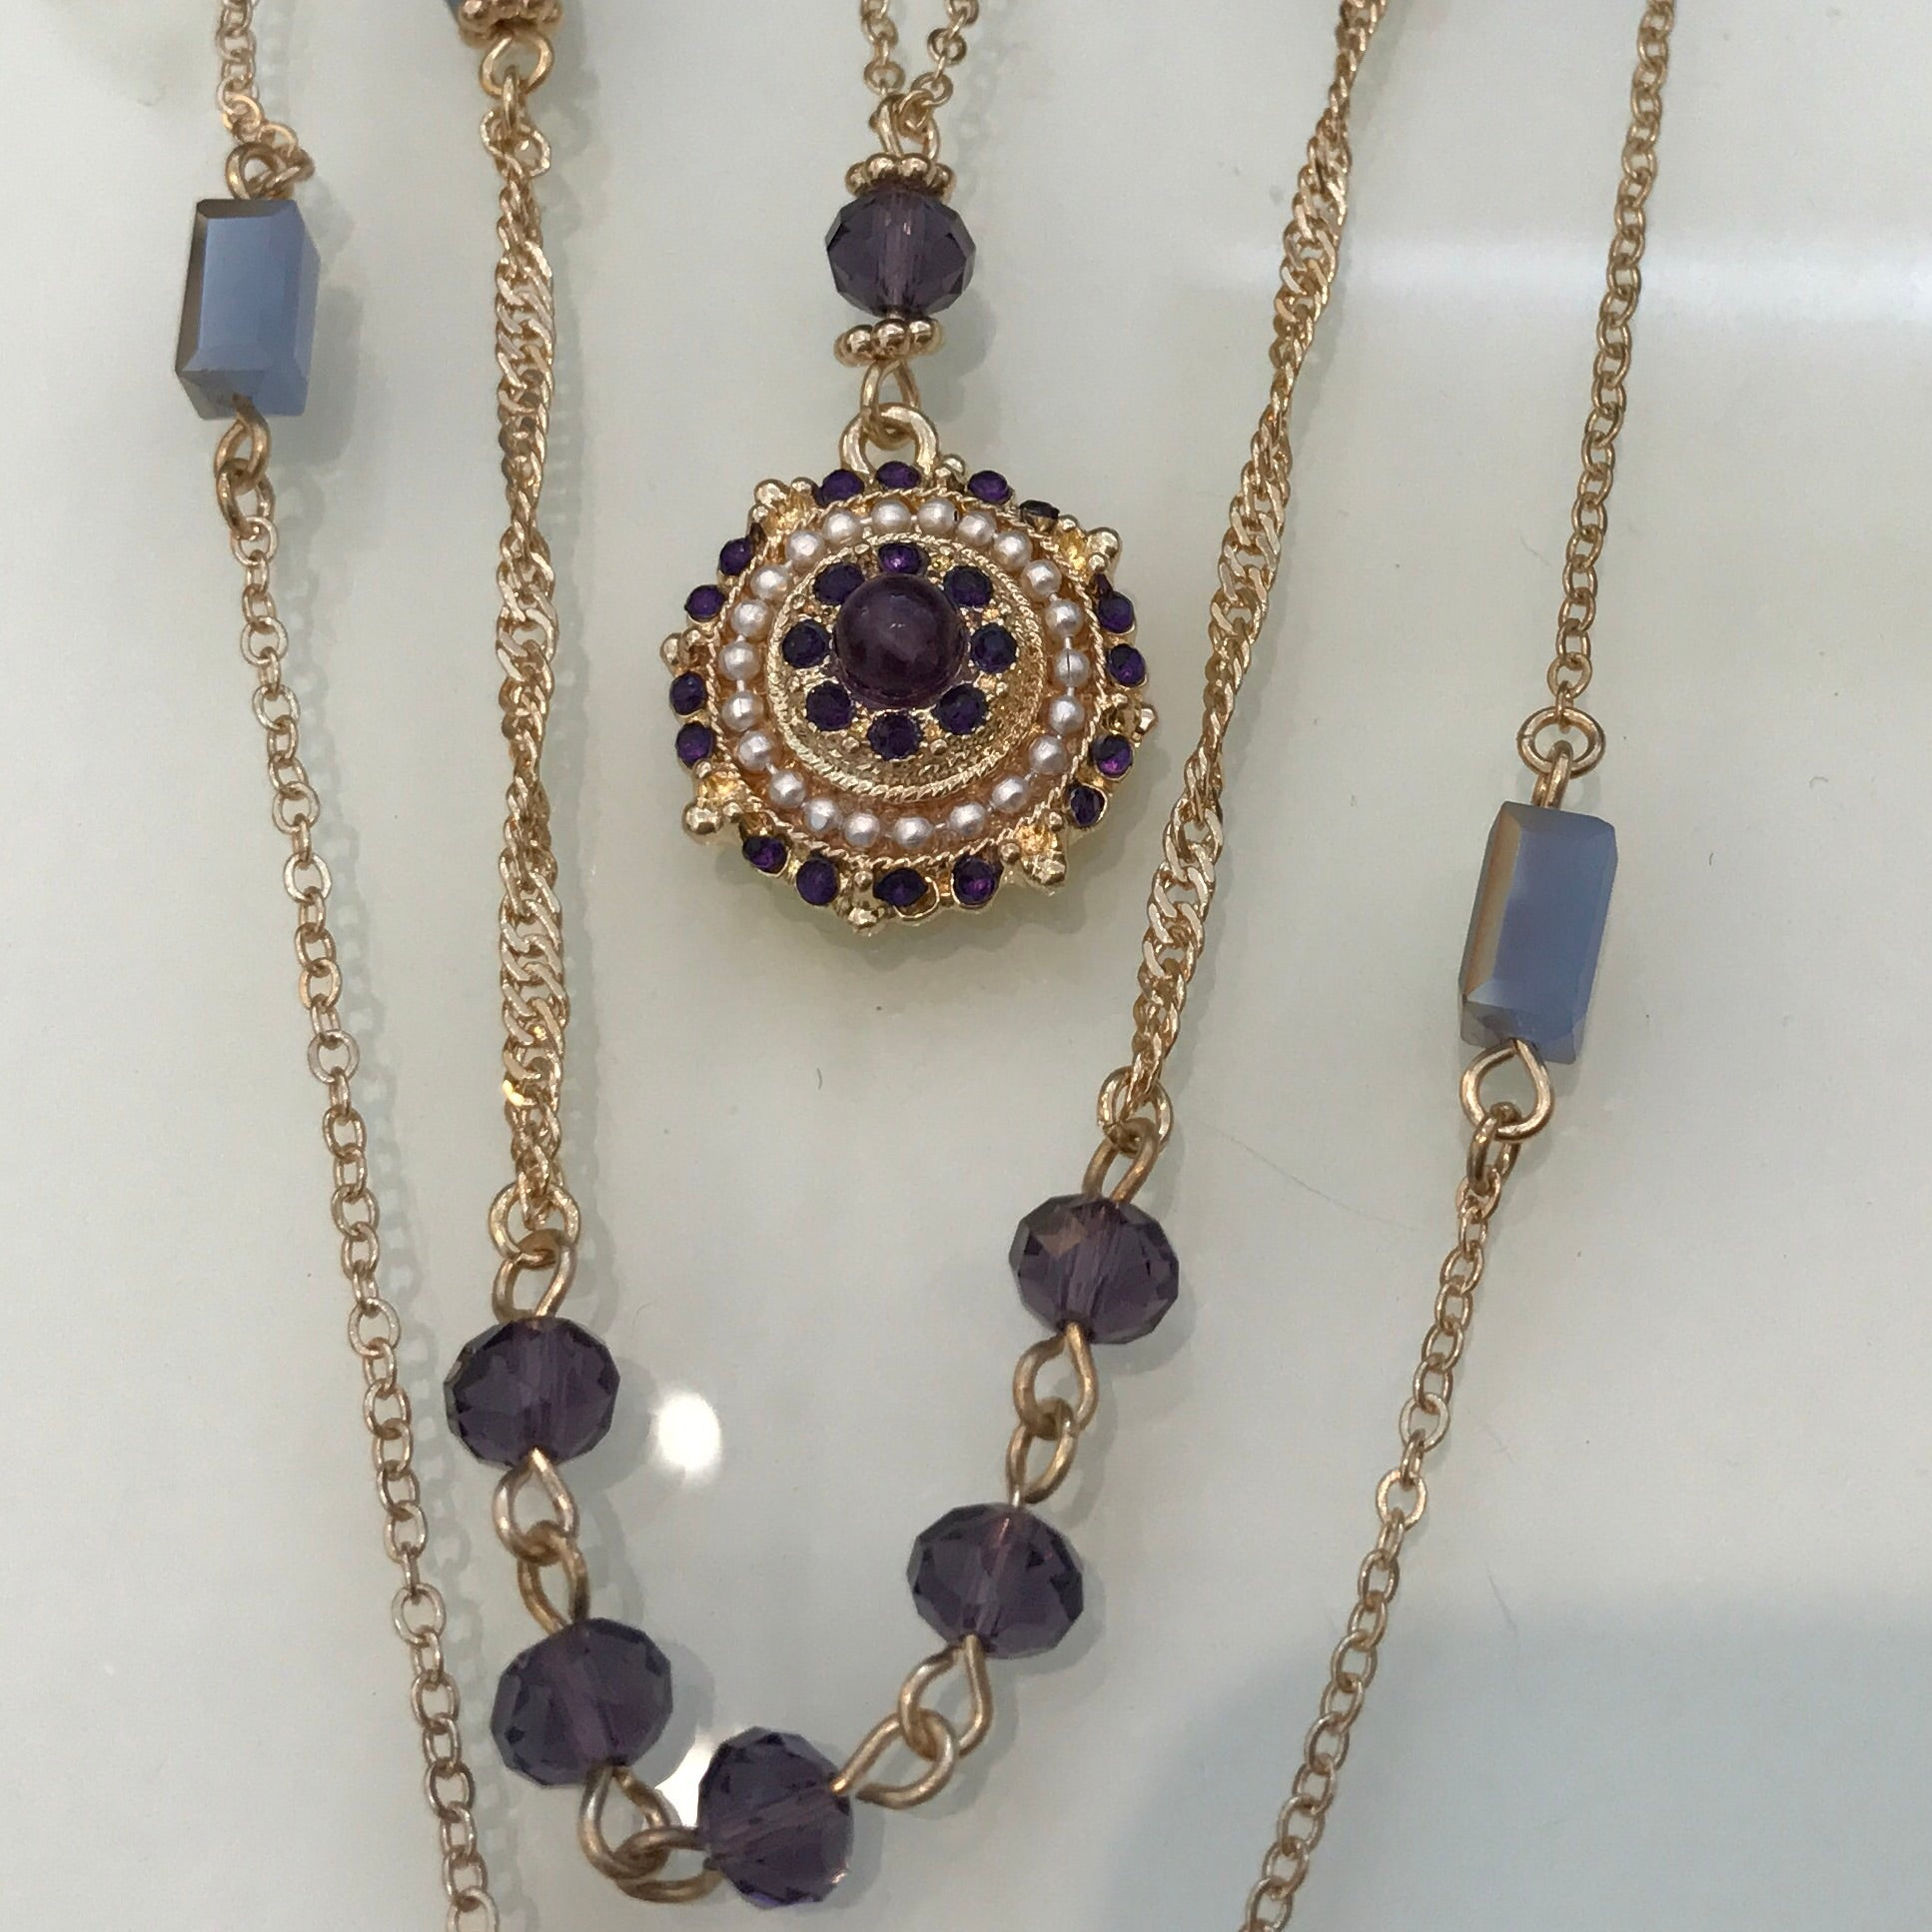 artisan layer layering products with pendant tiered prince evangeline fredrick jewelry evangeine necklace